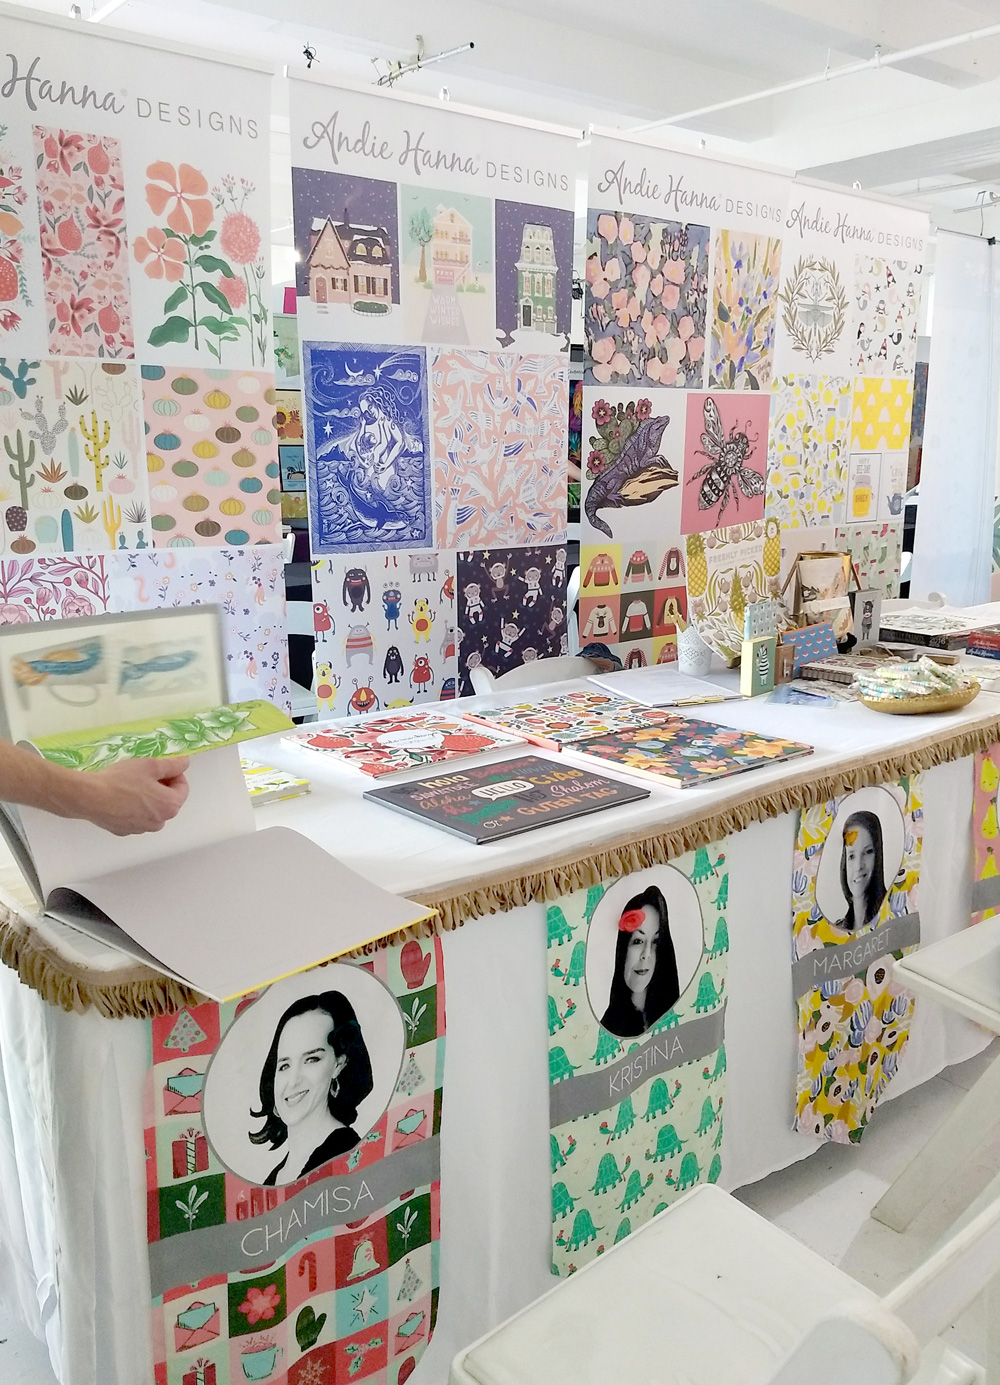 Zirkus Design // Blueprint NYC 2019 Recap + Lessons from a First-Time Attendee // Andie Hanna's Booth